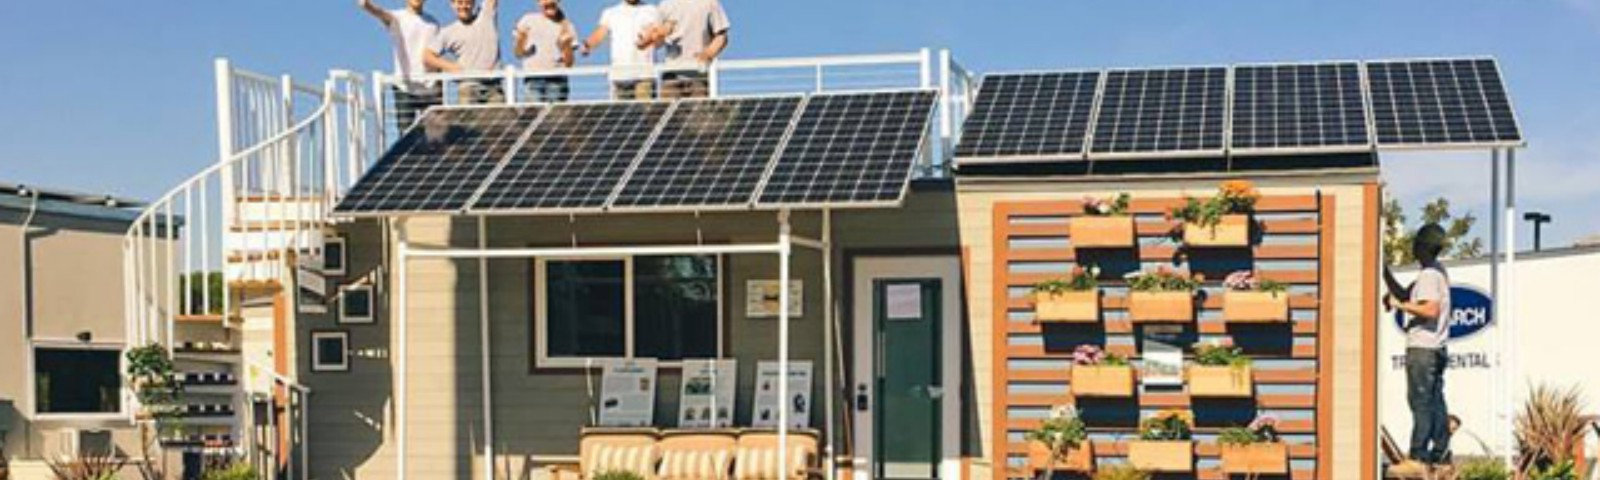 California Colleges Solar Power Tiny House Competition